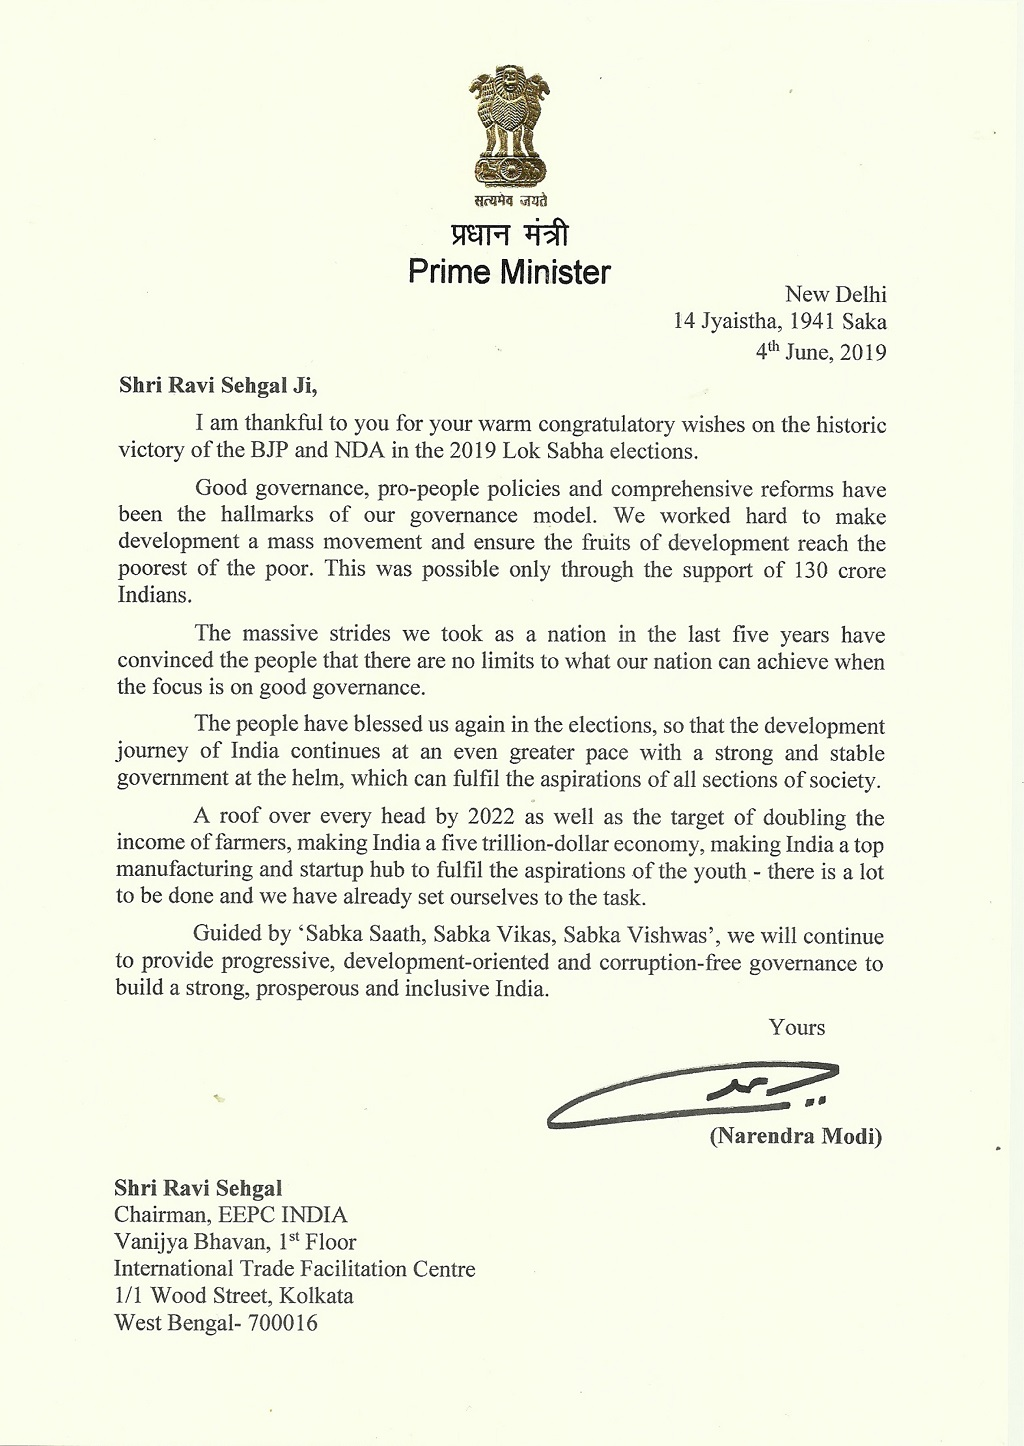 Hon`ble Prime Minister of India, responds to EEPC India Chairman, Mr Ravi Sehgal`s felicitation letter